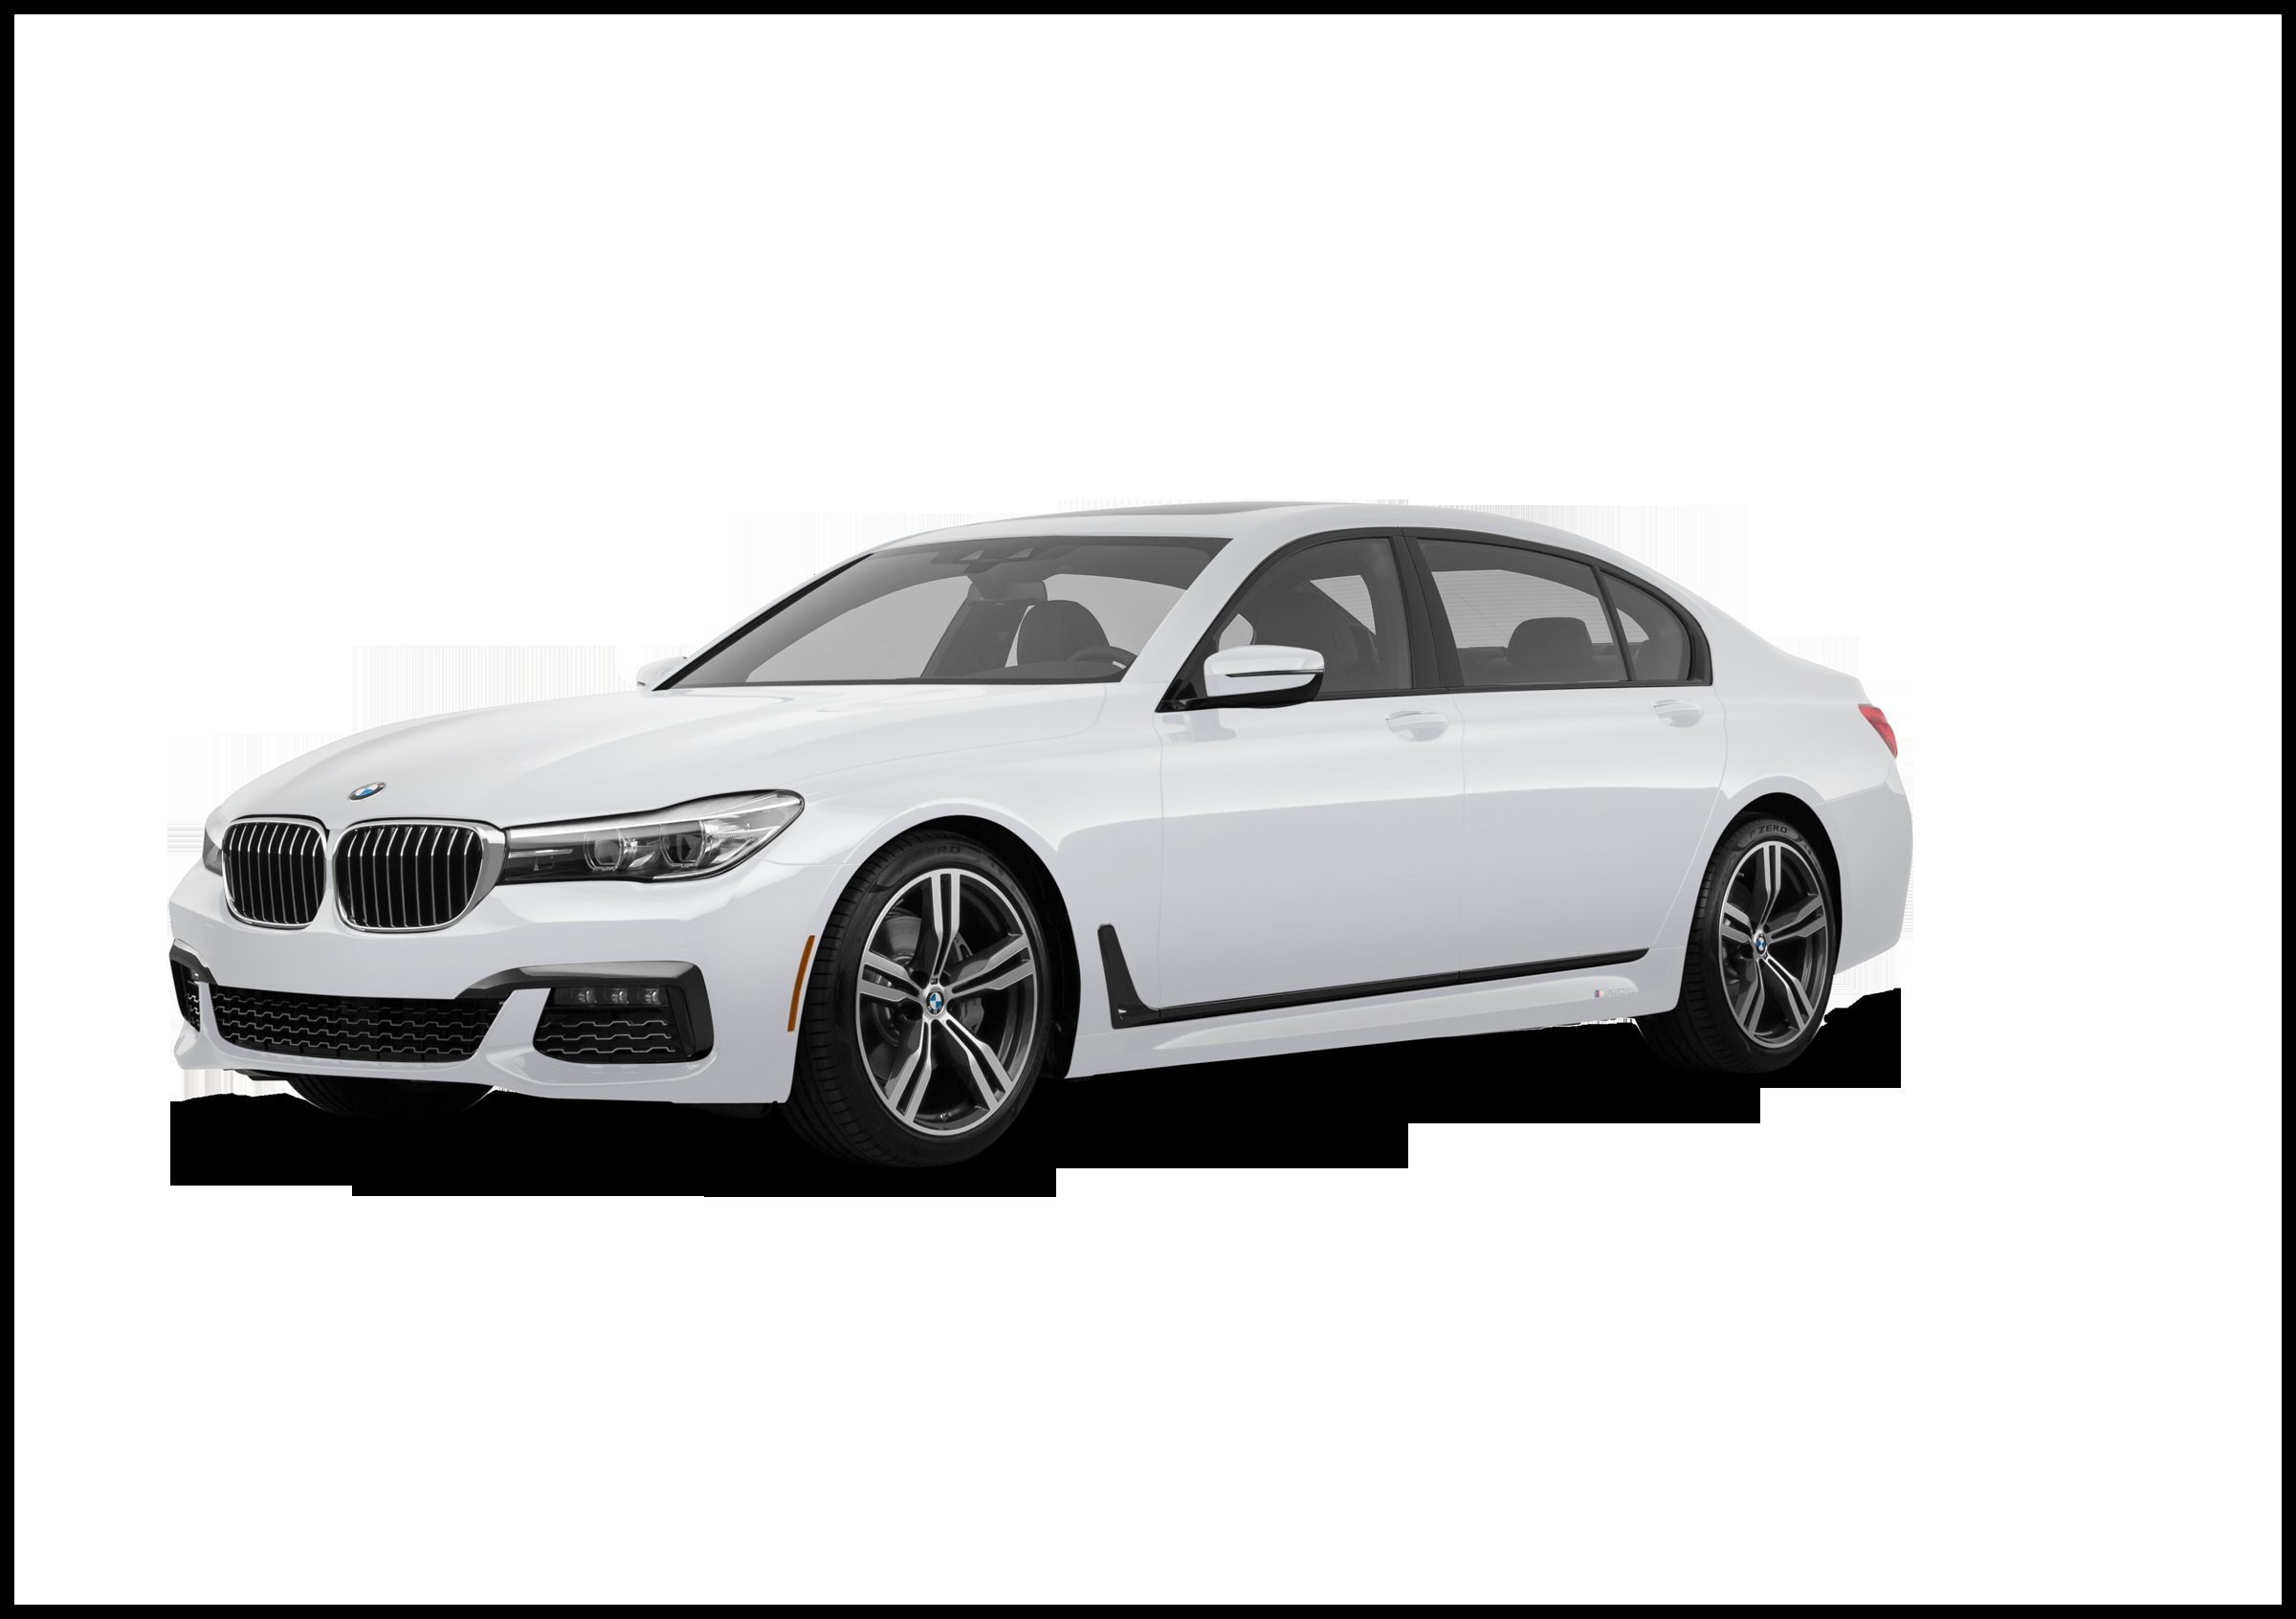 2019 BMW 7 Series 2019 BMW 740i xDrive Sedan